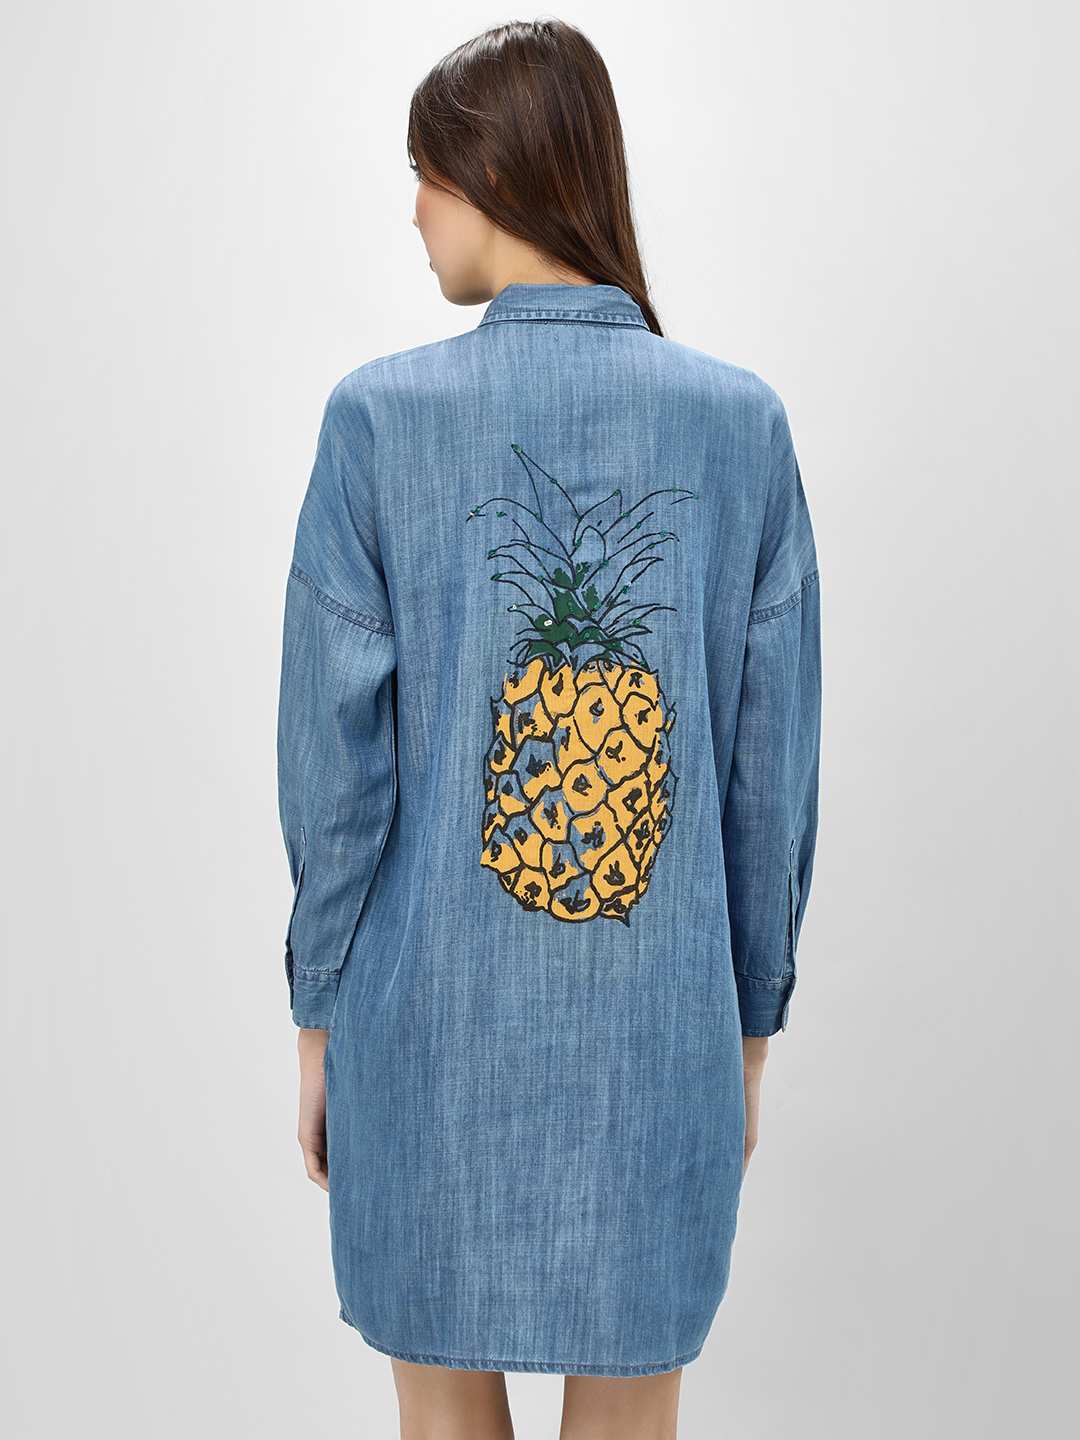 Beyond Clouds Blue Denim Dress With Sequined Pineapple Print 1